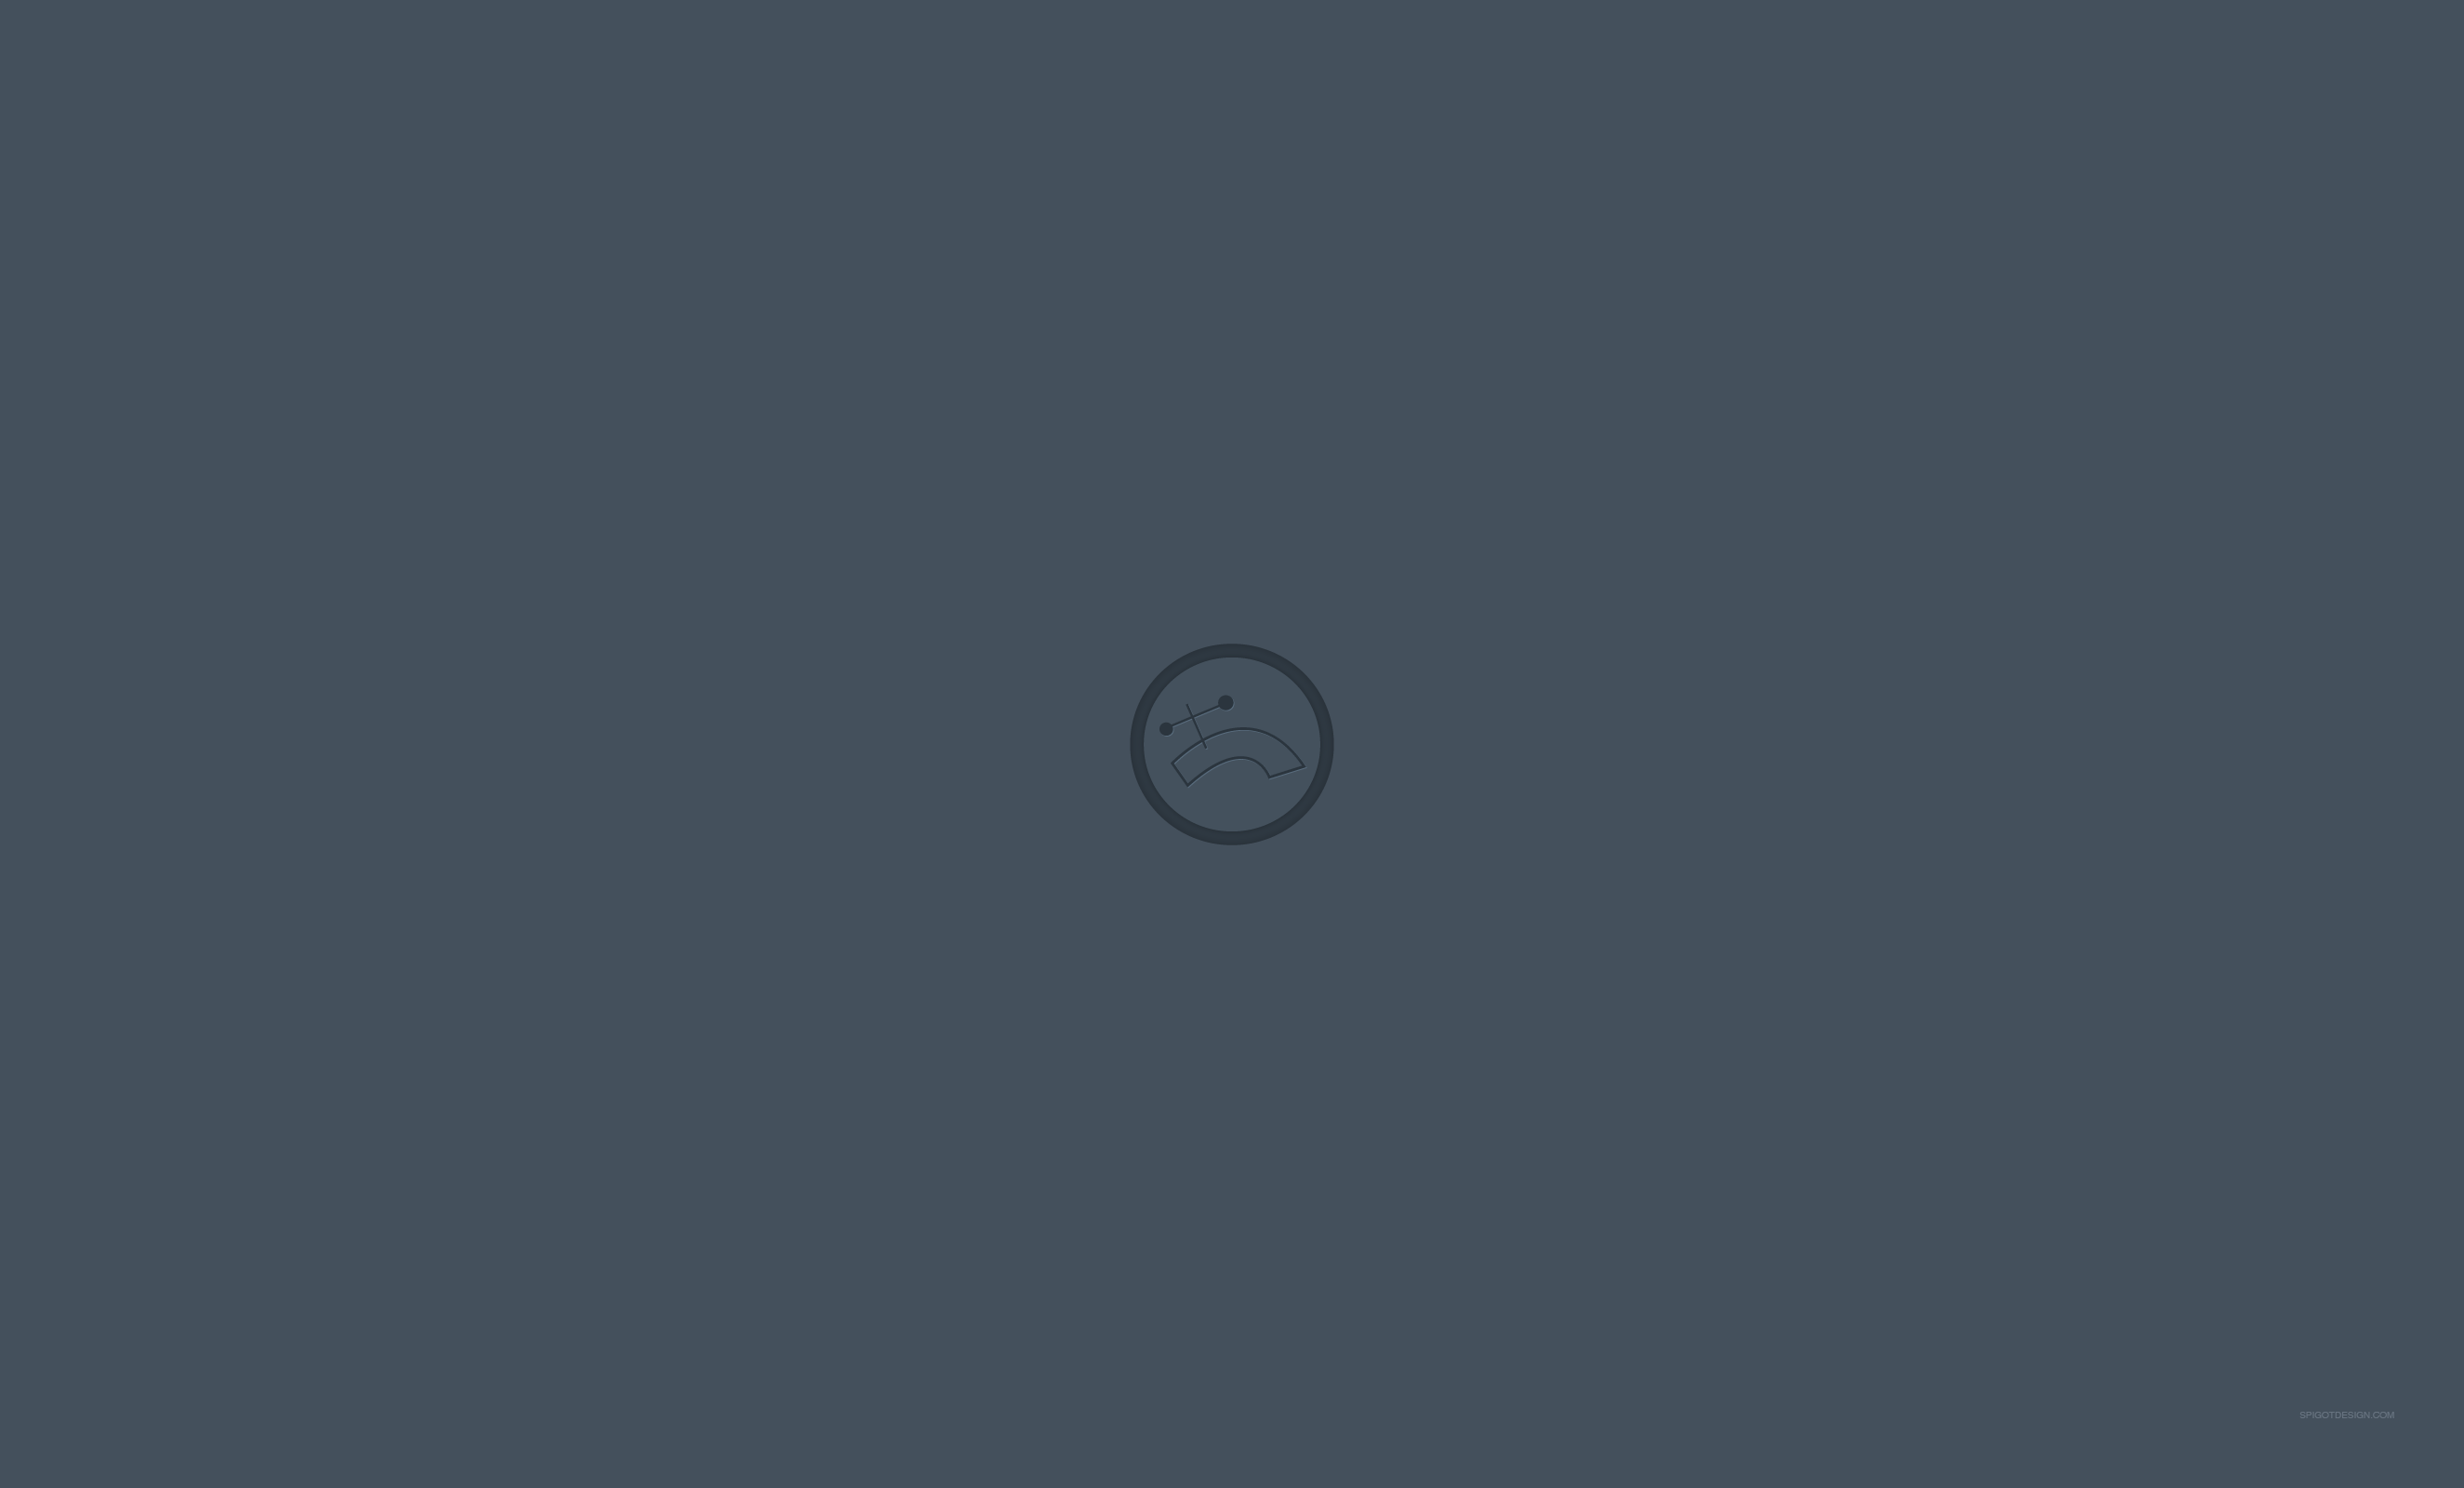 Free minimalist desktop wallpapers spigot design for Art minimal facebook